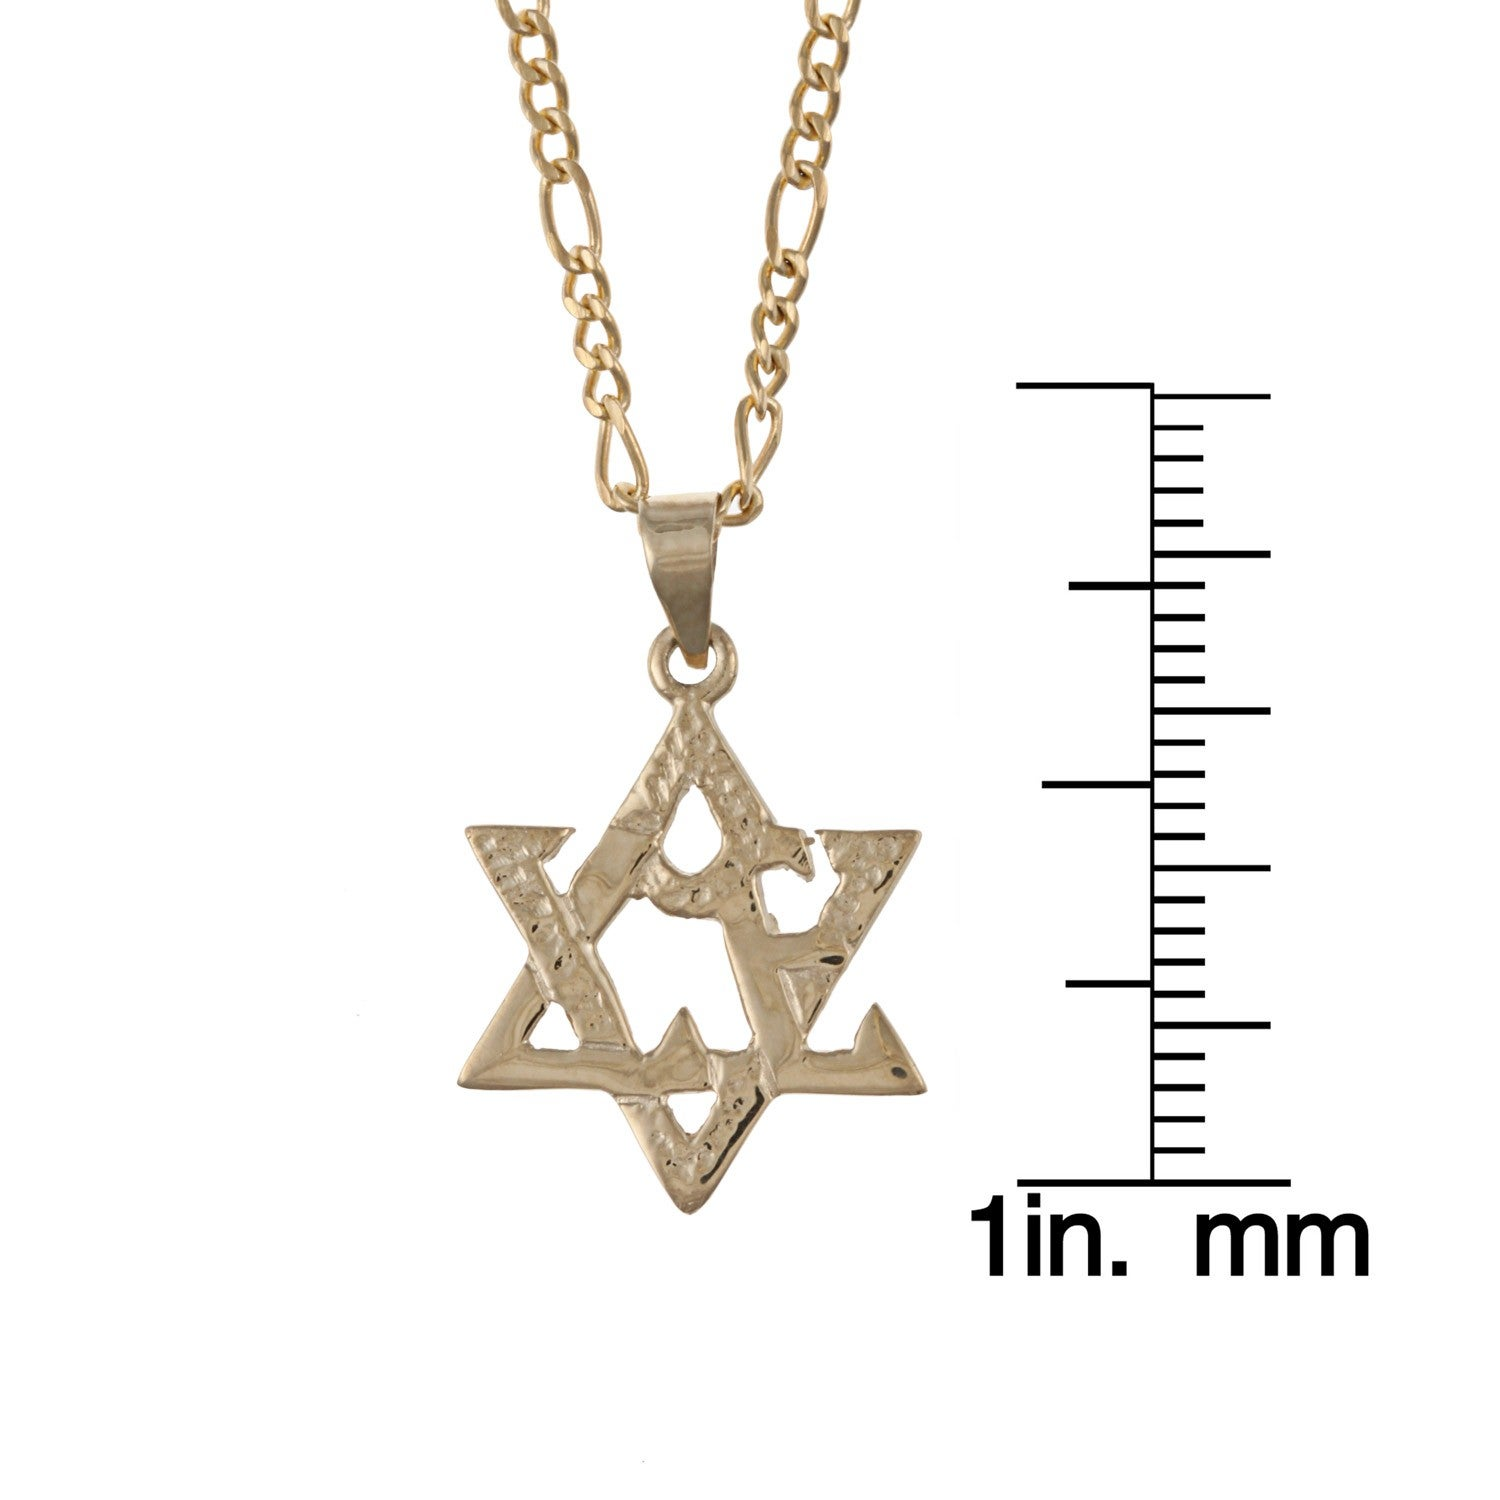 palm david jewish arab jewelry necklace hexagram shaped star gold hand magen hamsa item islam pendant color